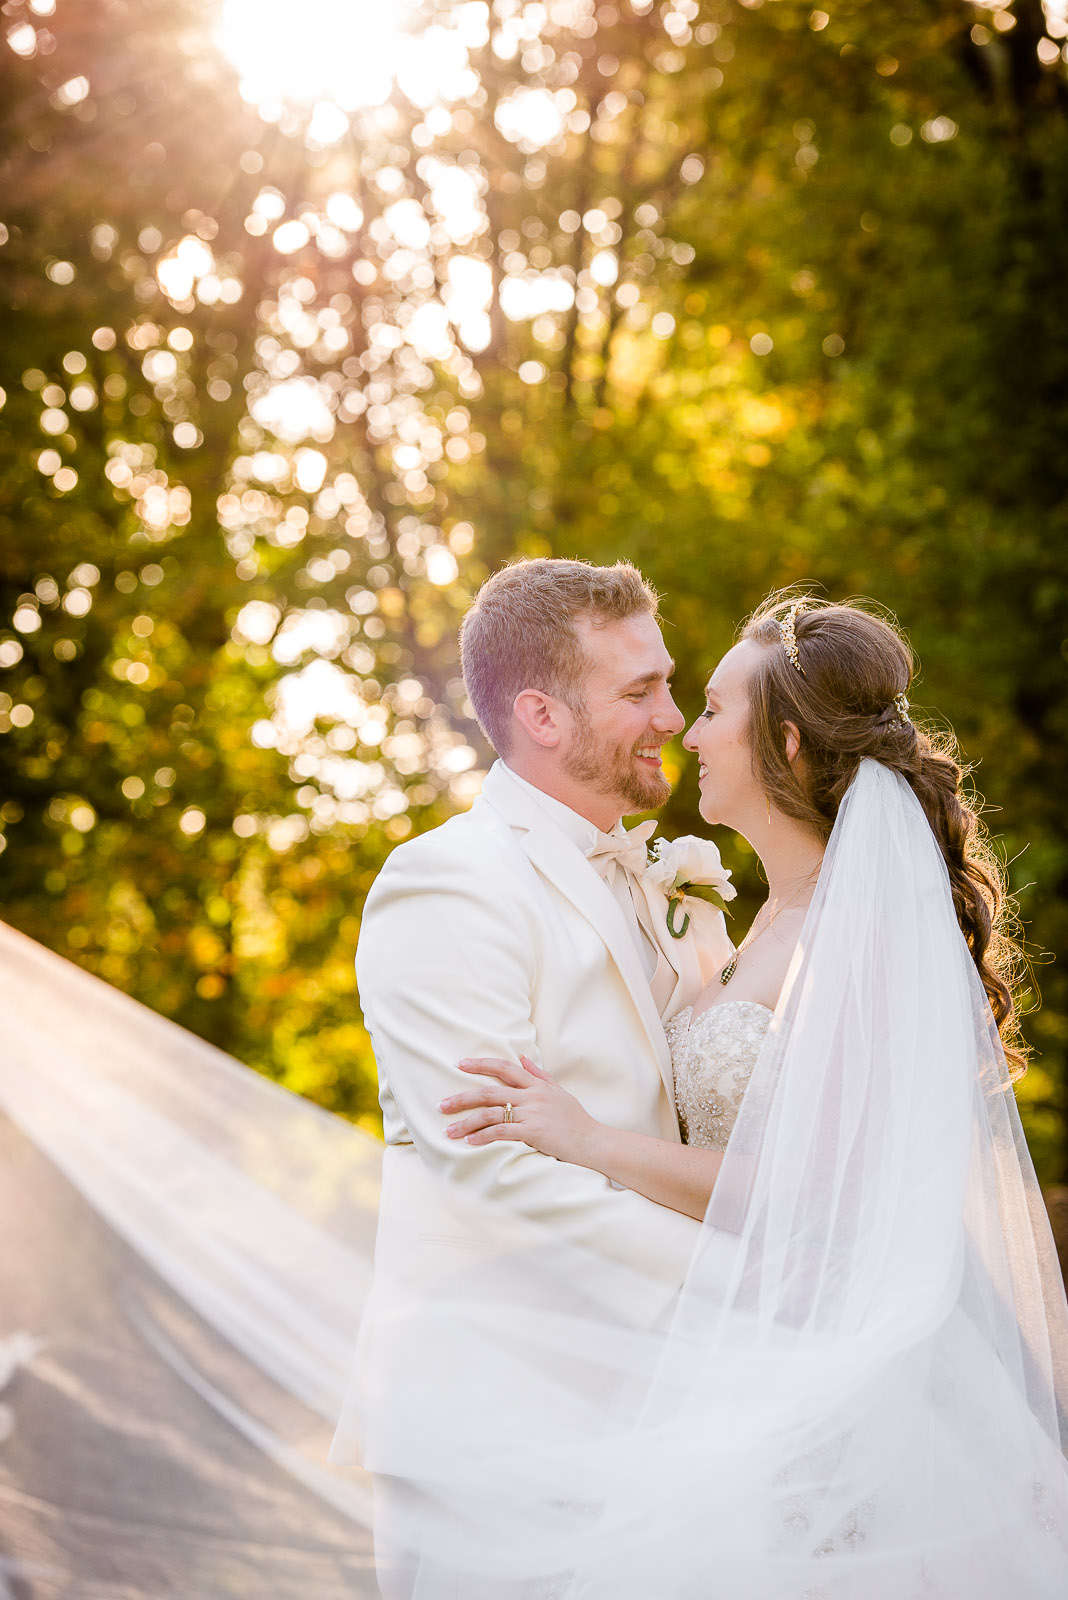 Eric_and_Christy_Photography_Blog_Wedding_Eva_Andrew-31